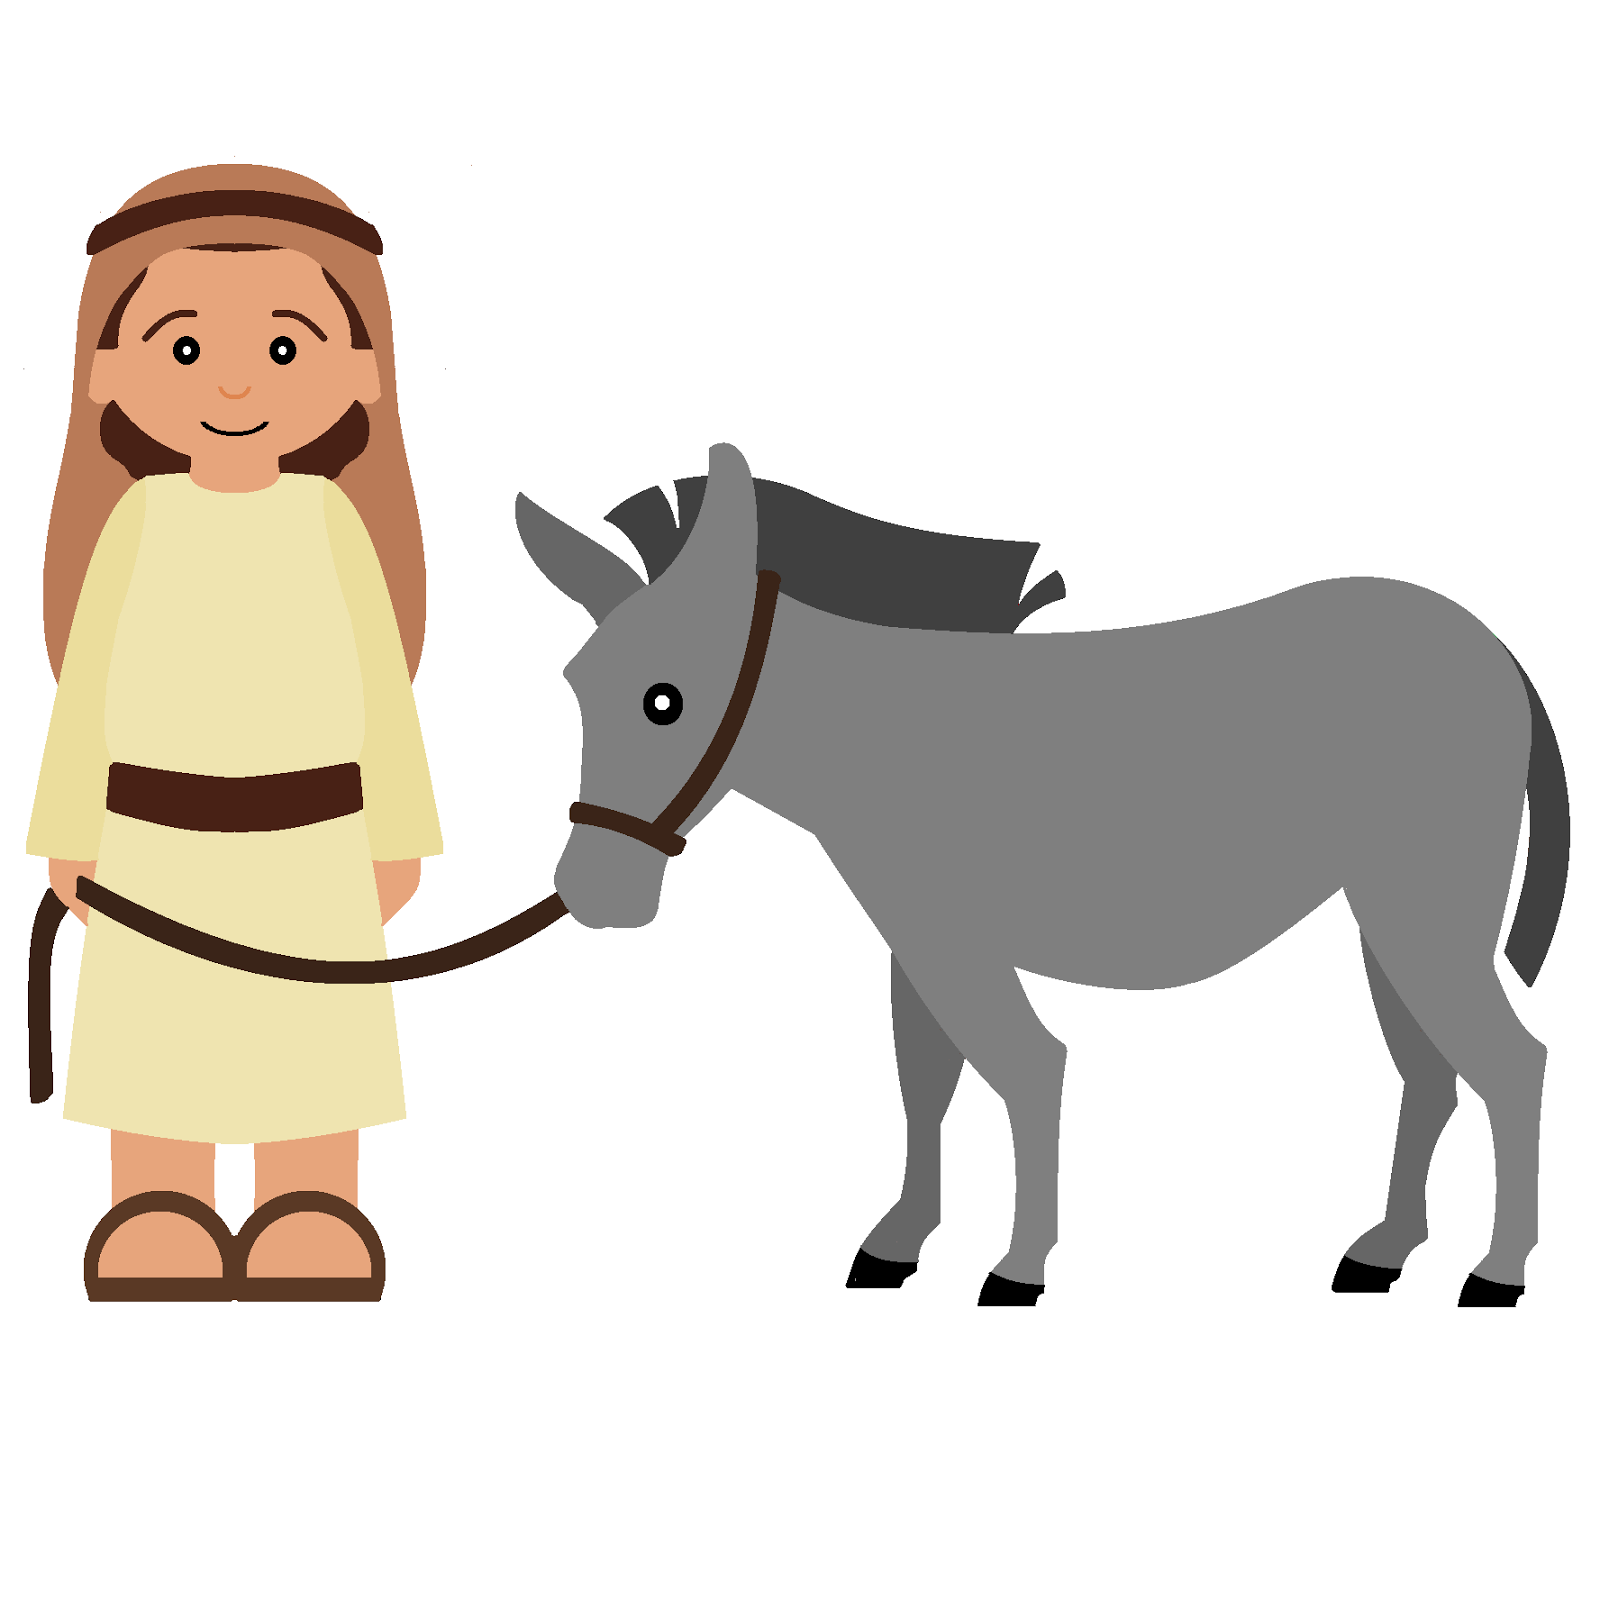 Kids carrying jesus mary and joseph clipart clipart library stock Mary and joseph on a donkey clipart - ClipartFox clipart library stock